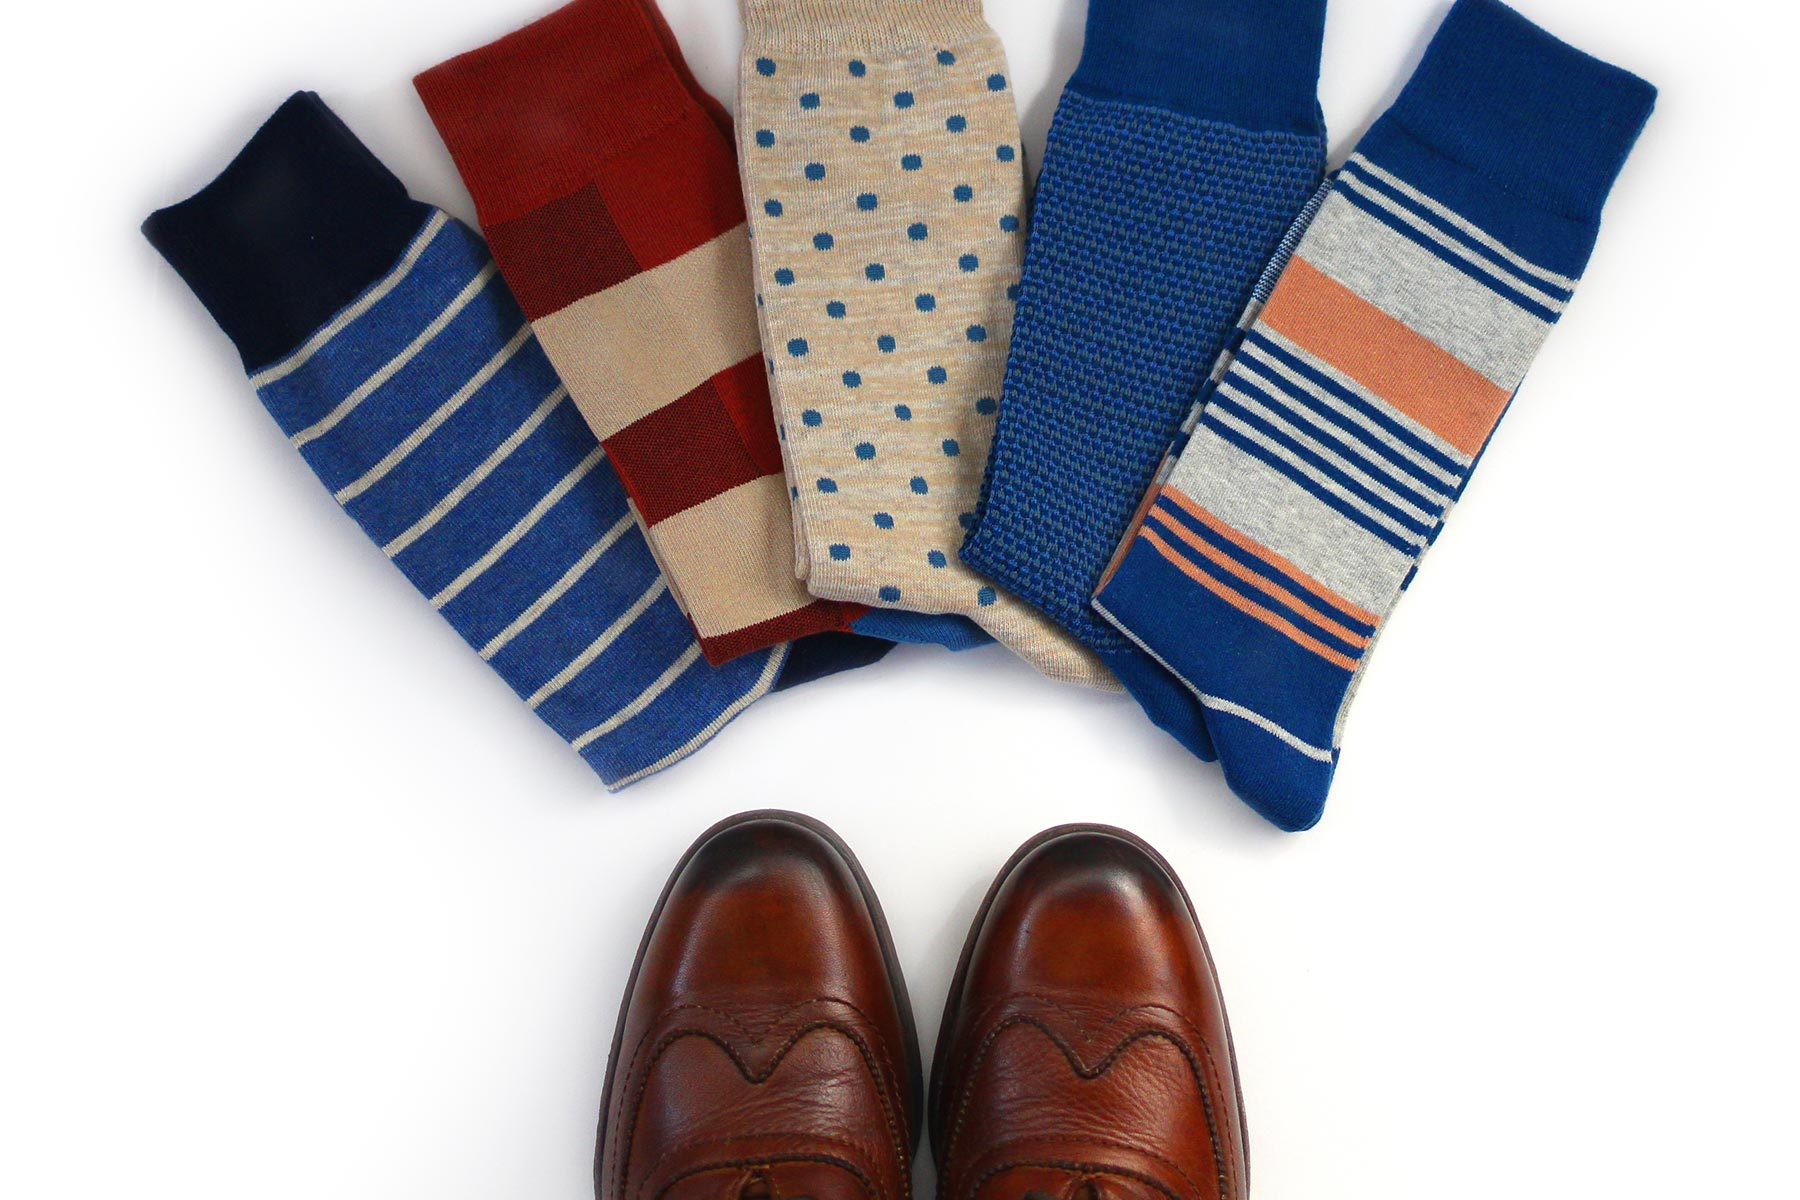 Bespoke-Fashion-Products-Socks-1.jpg